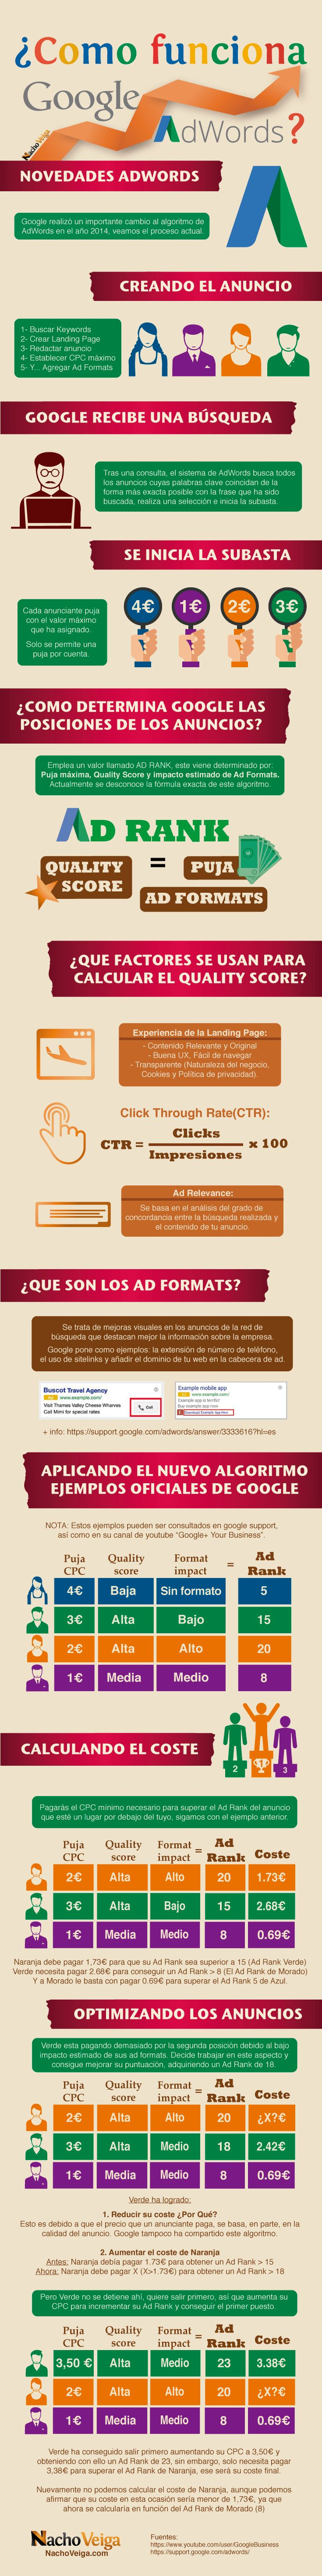 Cómo funciona Google Adwords #infografia #infographic #marketing | TICs y Formación